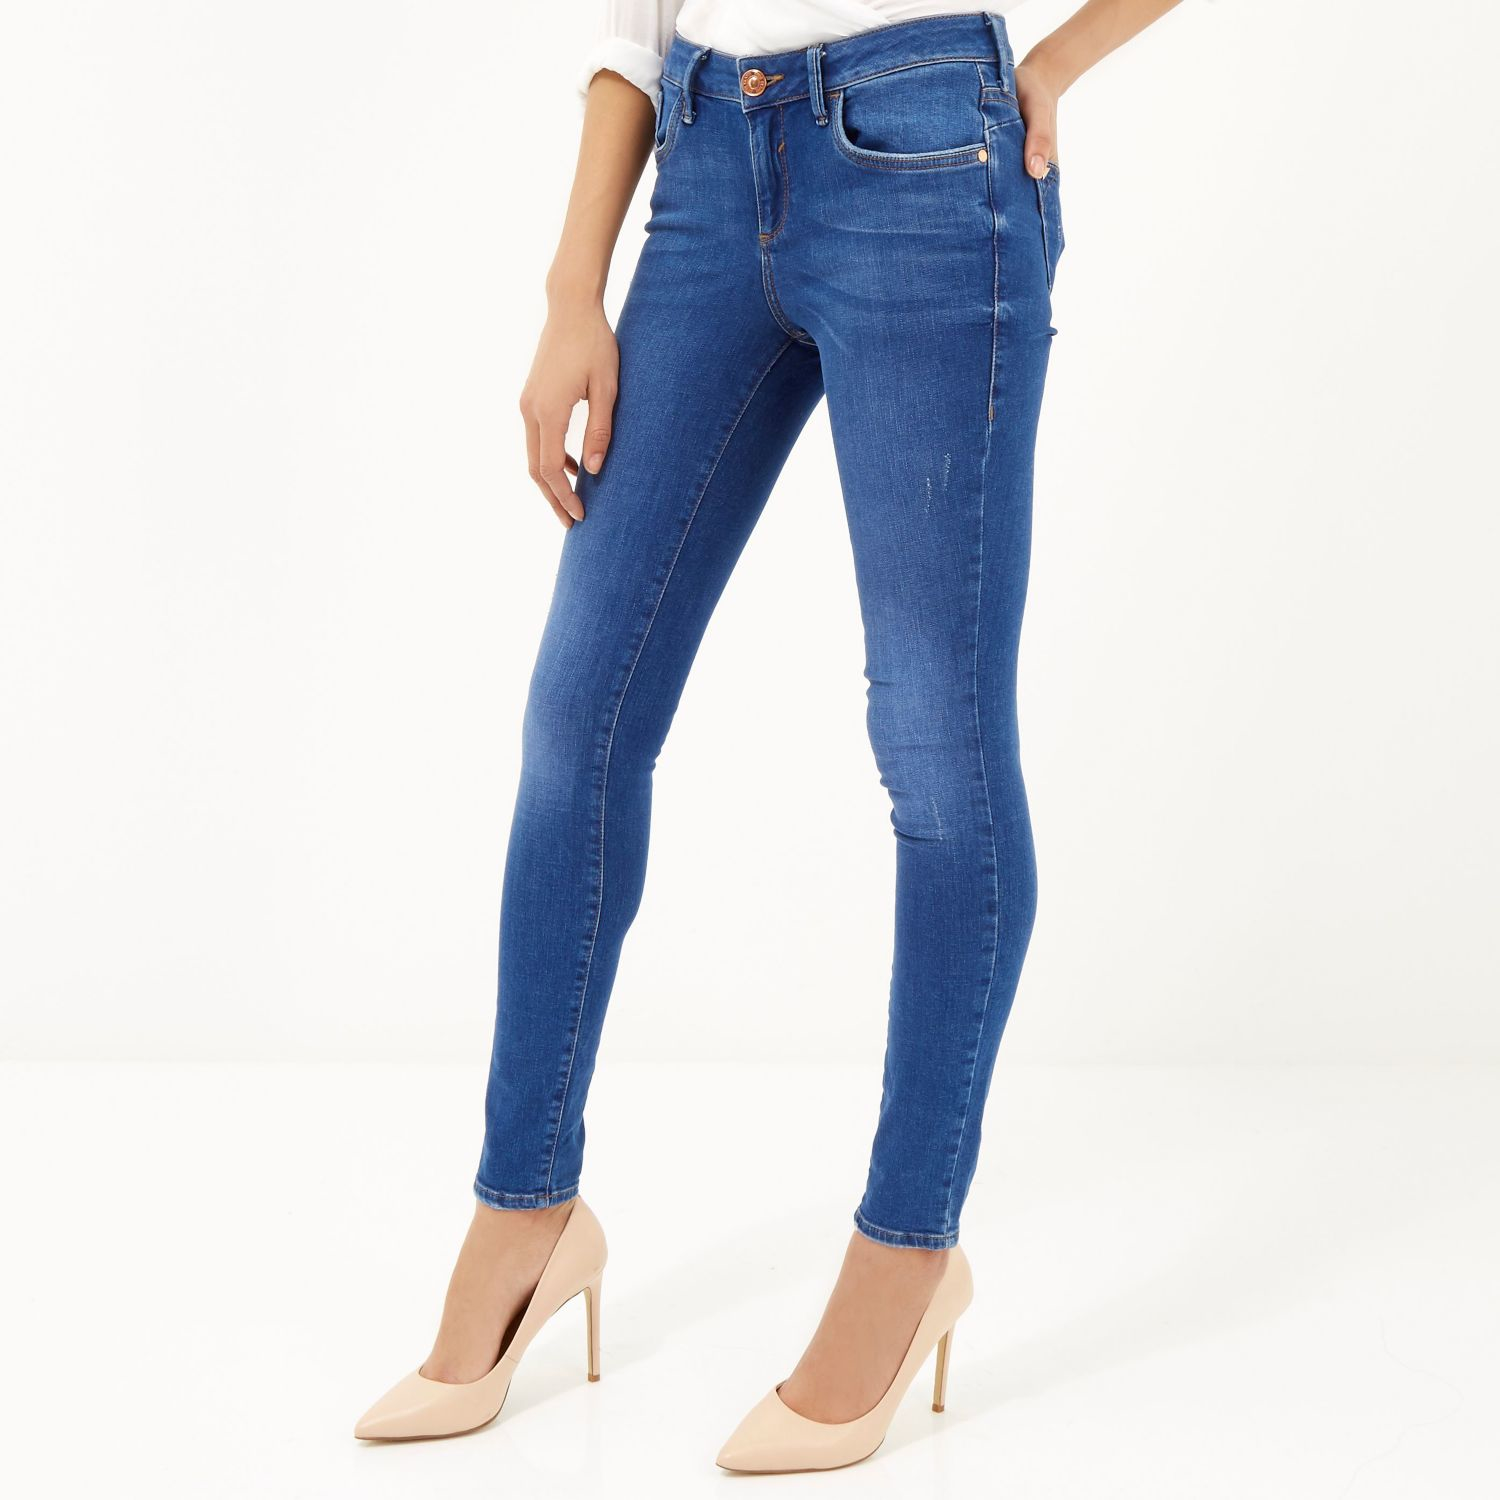 Bright Blue Skinny Jeans - Jeans Am